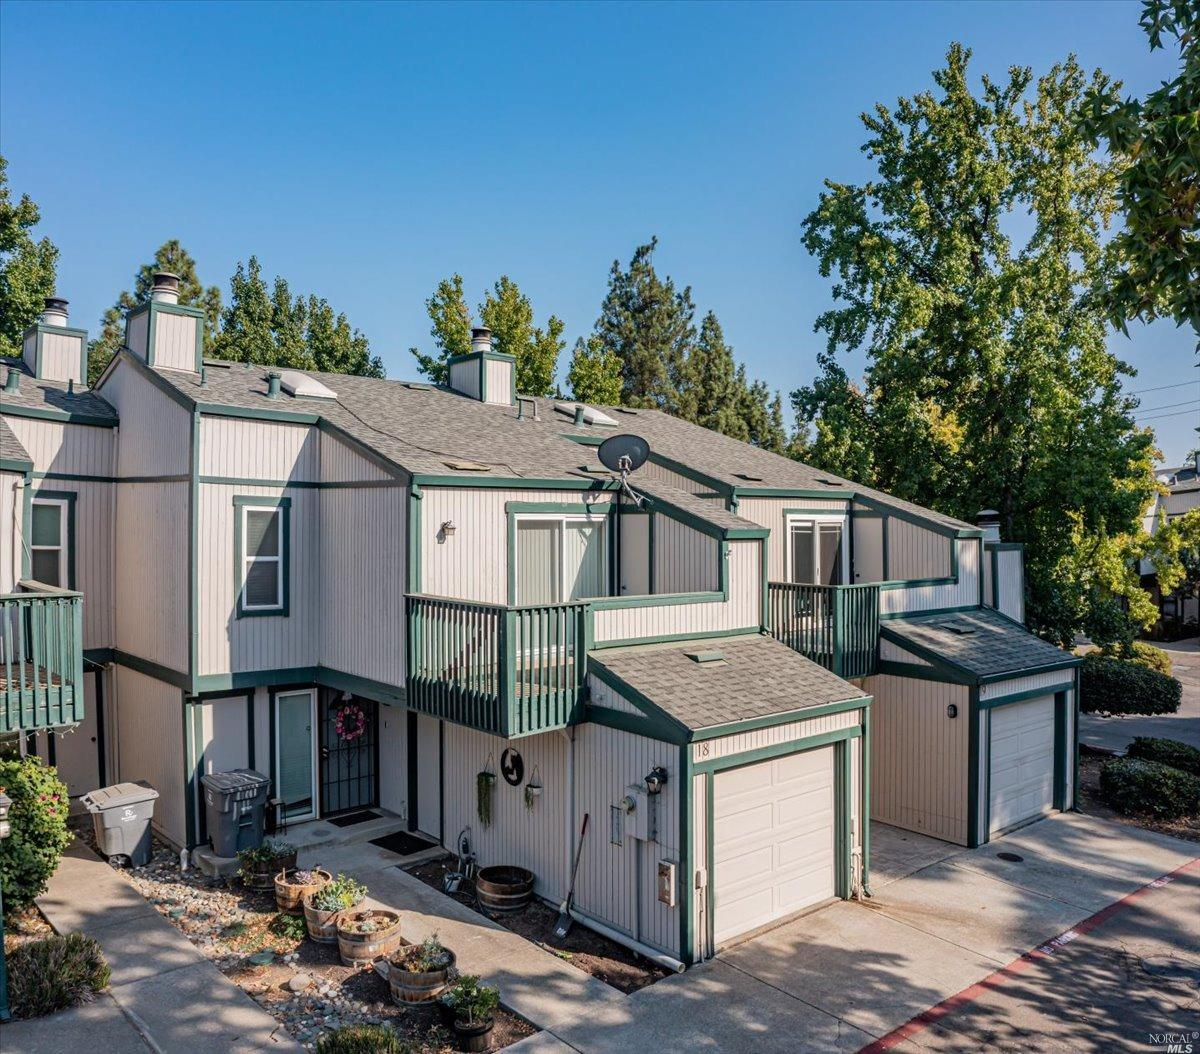 Beautiful Townhome in Shasta Park. The offering includes newer stainless steel appliances, central heat and air, dual paned windows, wide plank floors and fully fenced private back patio. The floorplan is welcoming with a large open living room that features a wood burning fireplace, formal dining area, and half bathroom on the main floor. Exceptional walk-in closet in and ensuite bathroom in the primary suite makes a nice retreat with private balcony. 1 car garage grants extra room for parking or storage. The community also offers two swimming pools, sports court and entry gate.